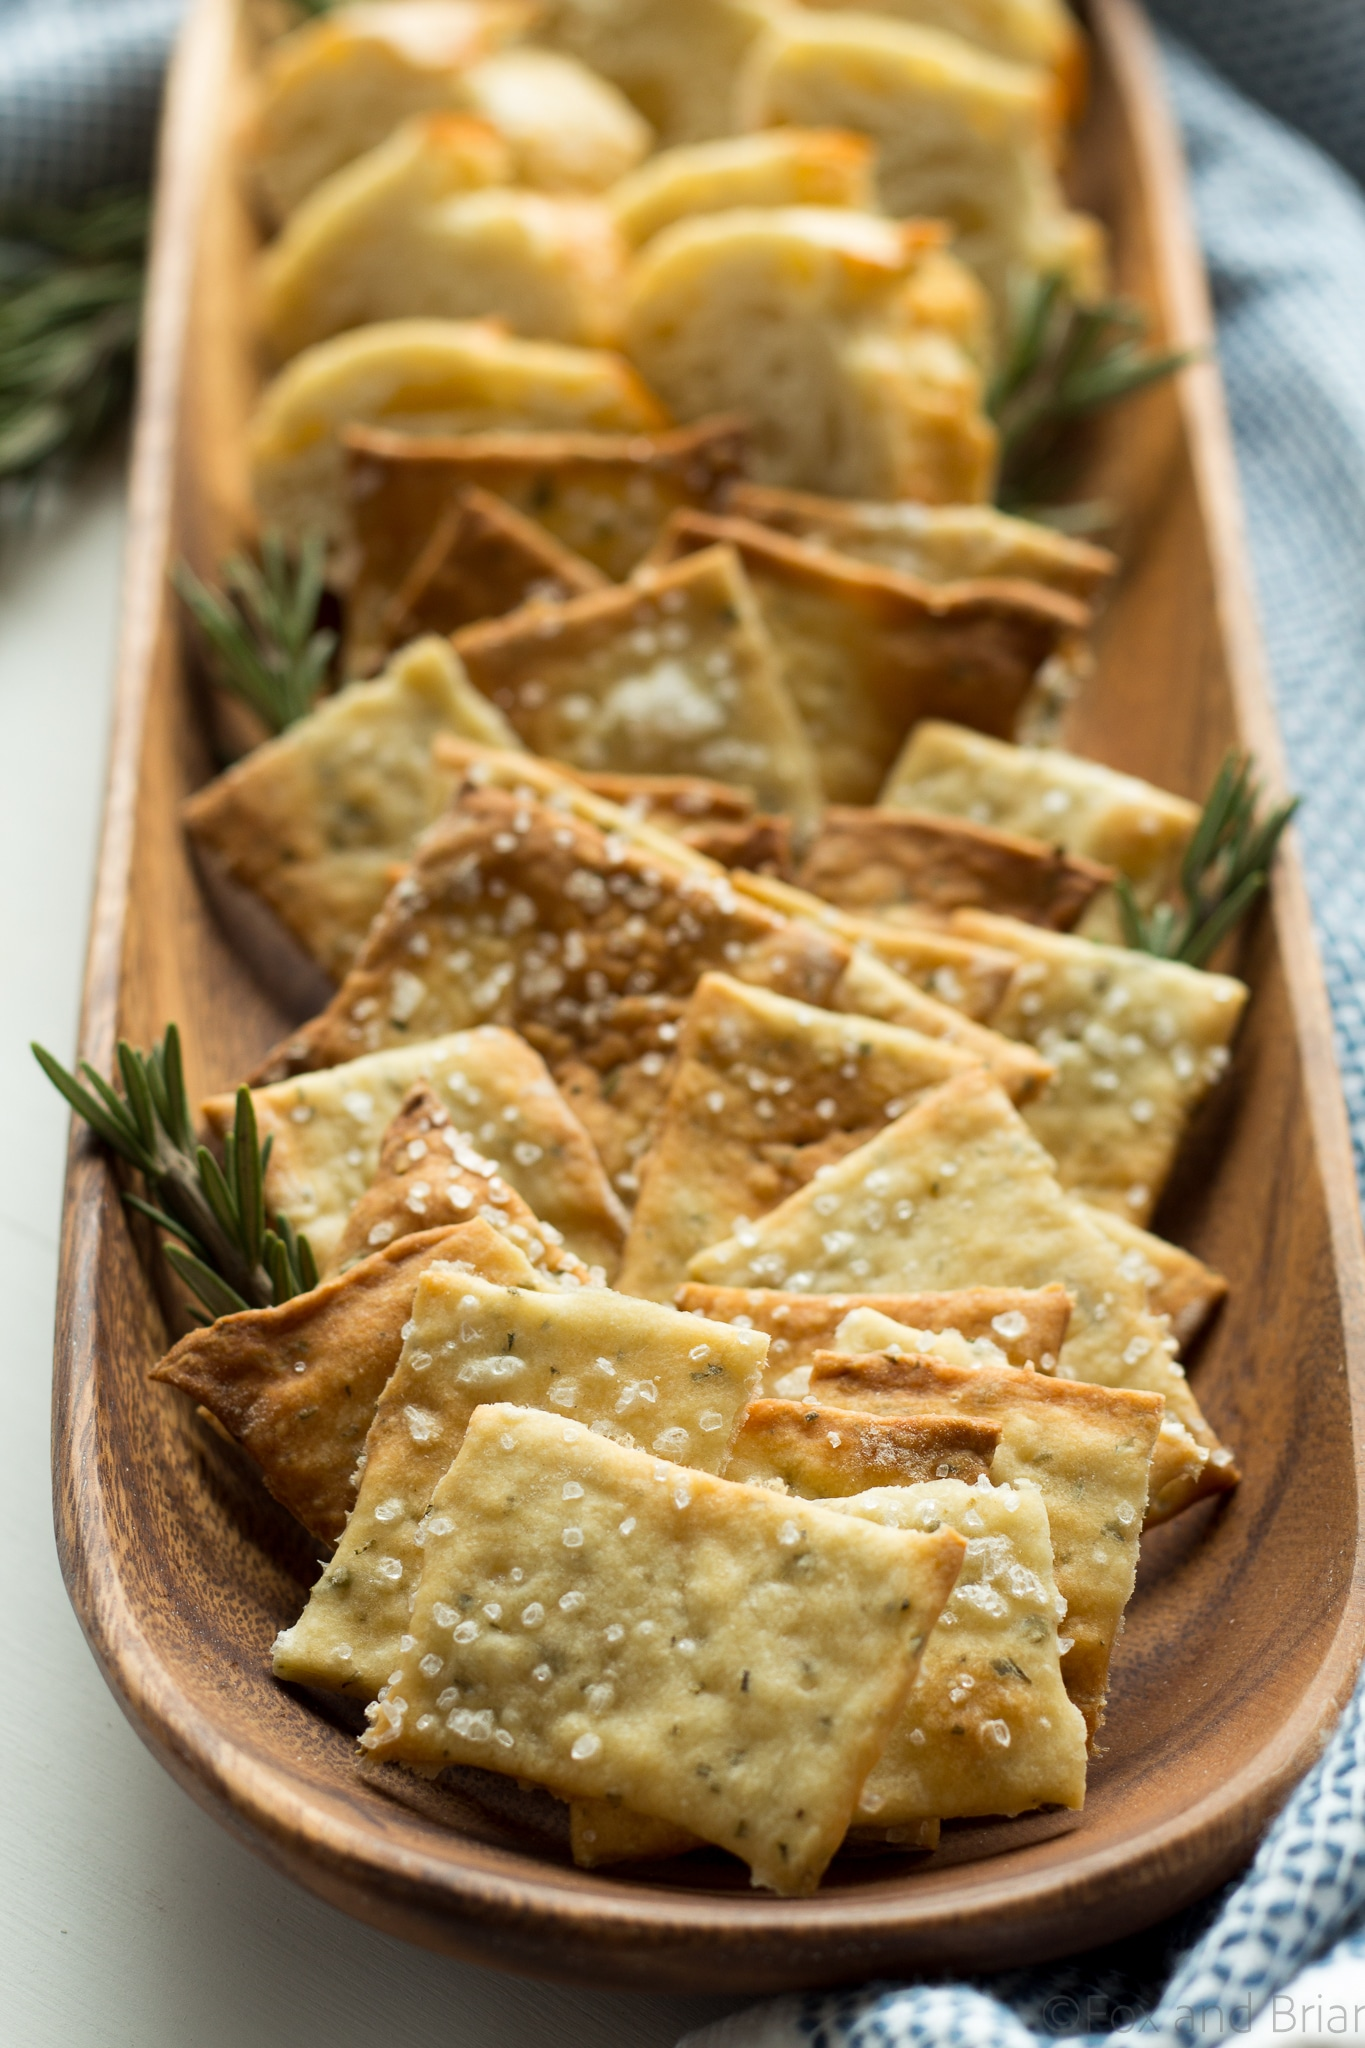 These easy homemade crackers are the perfect addition to your cheese plate, or just to have on hand for snacking. Also, how to make a killer cheeseplate with ingredients from the regular grocery store!